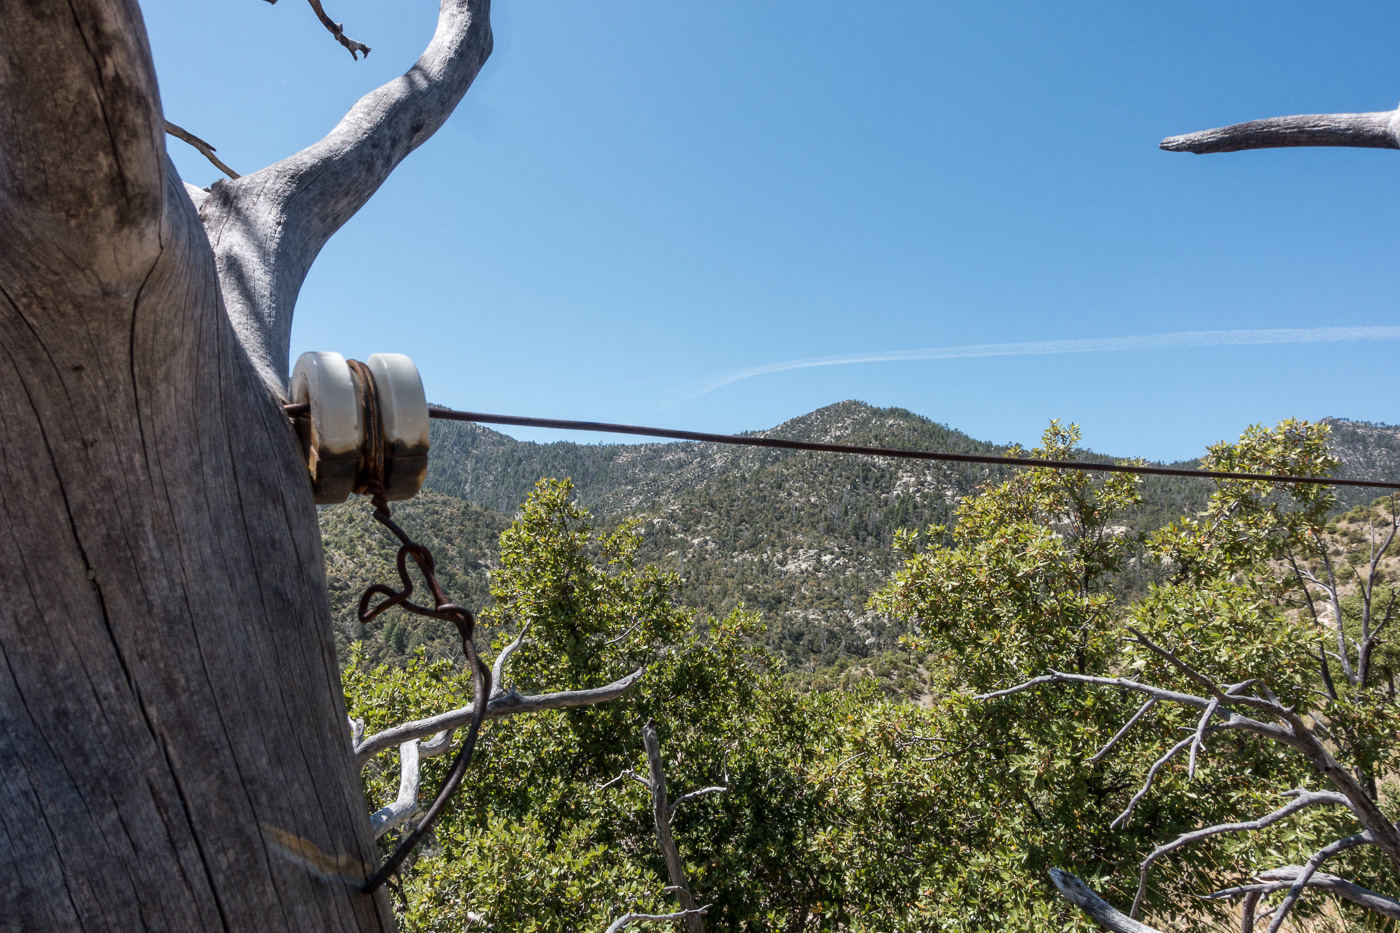 Remains of the phoneline from the 1910s that came up from Tucson and over to the Brush Corral Ranger Station. April 2017.